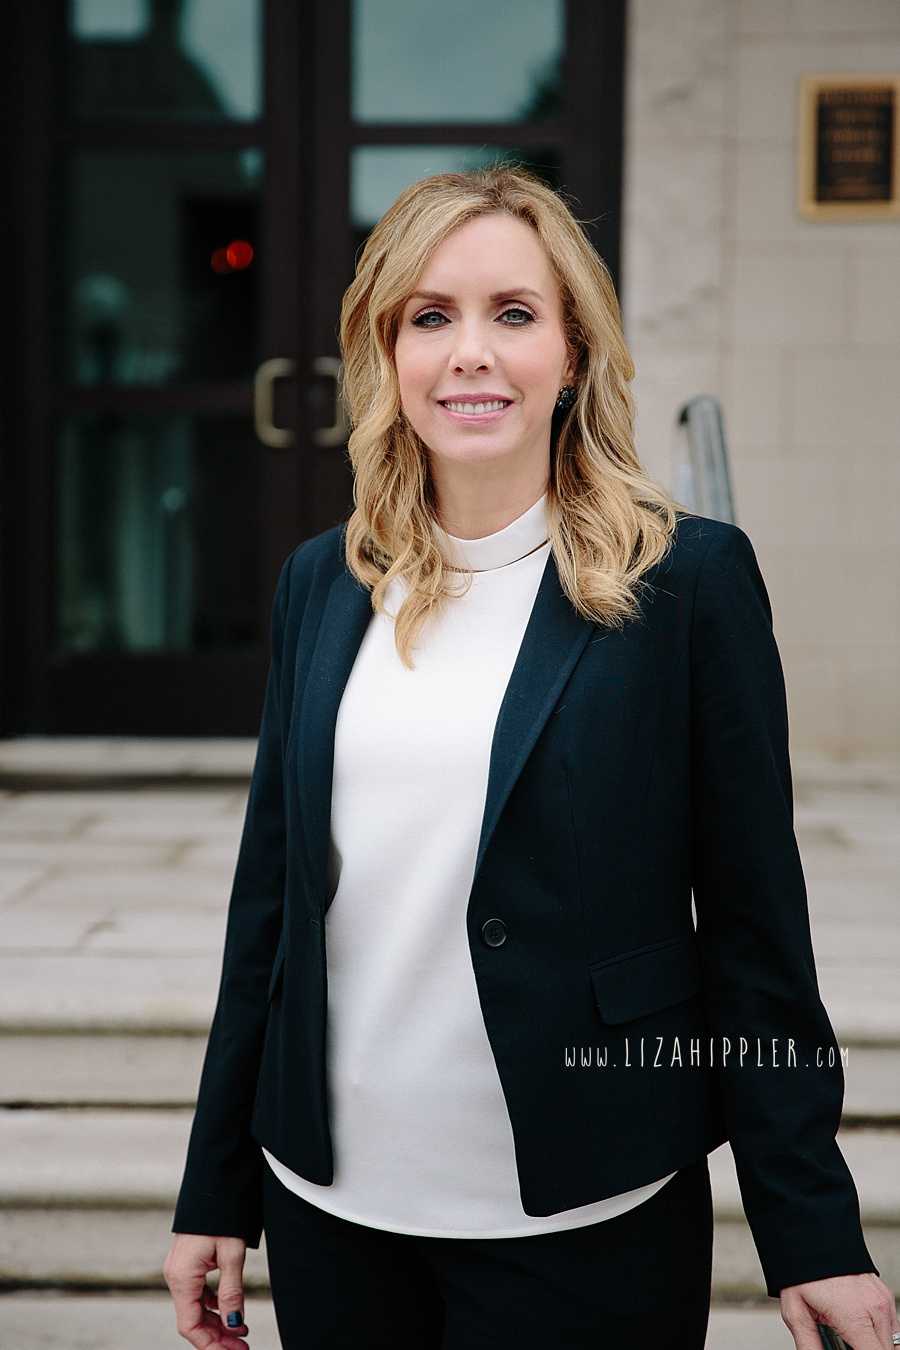 blonde blue-eyed female with white shirt and black blazer stands in front of Franklin tn courthouse